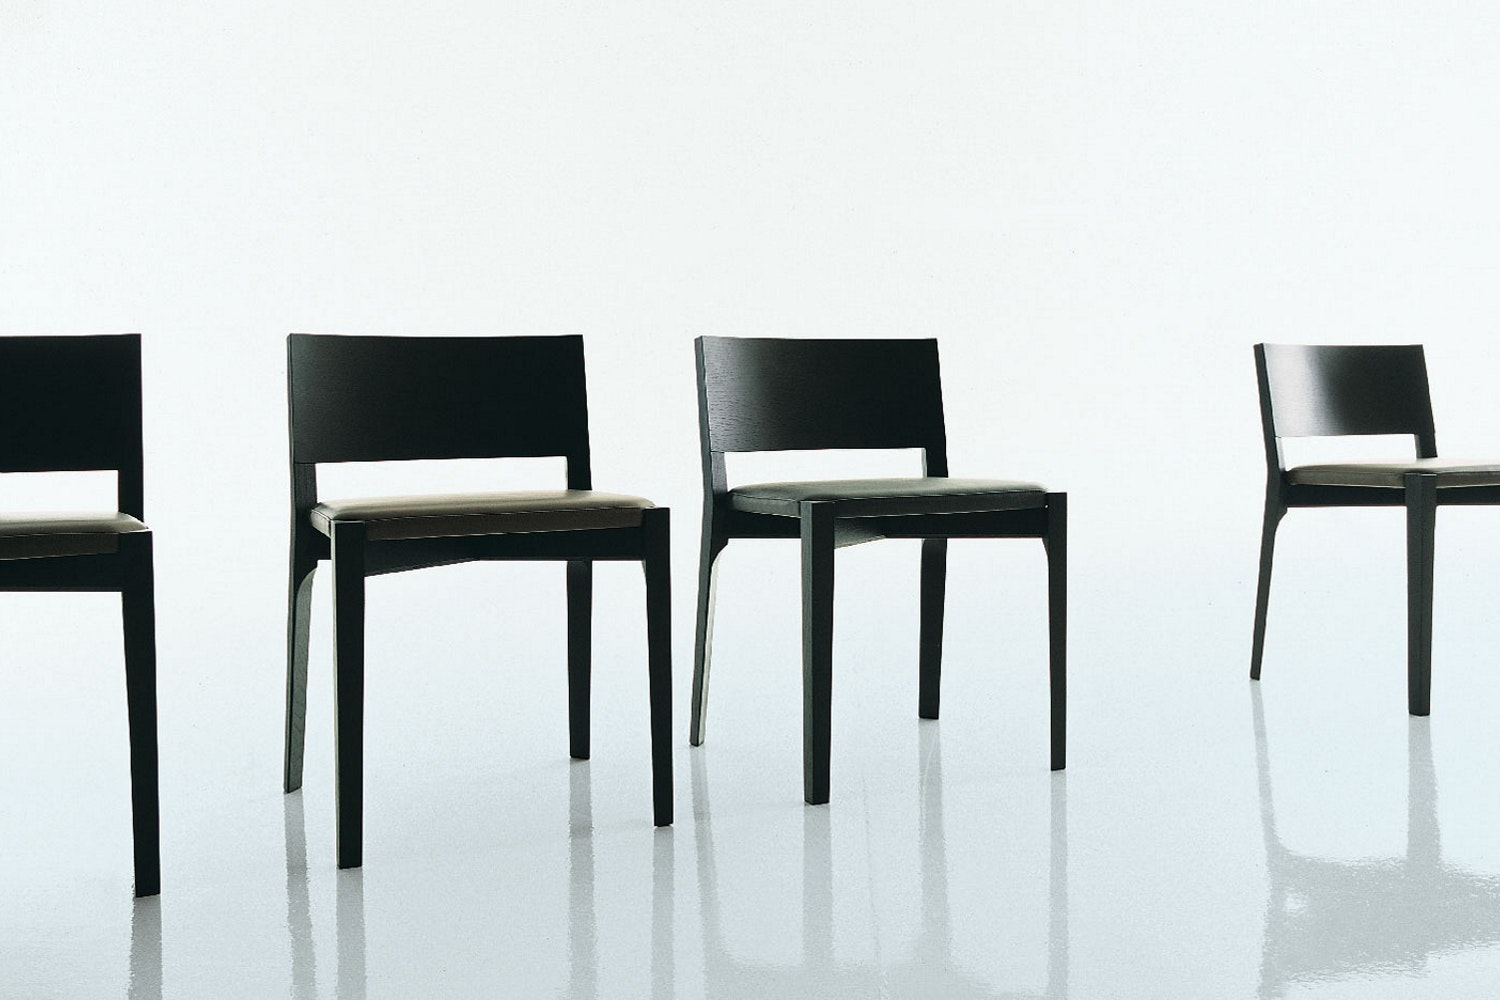 Lario Chair by Piero Lissoni for Porro